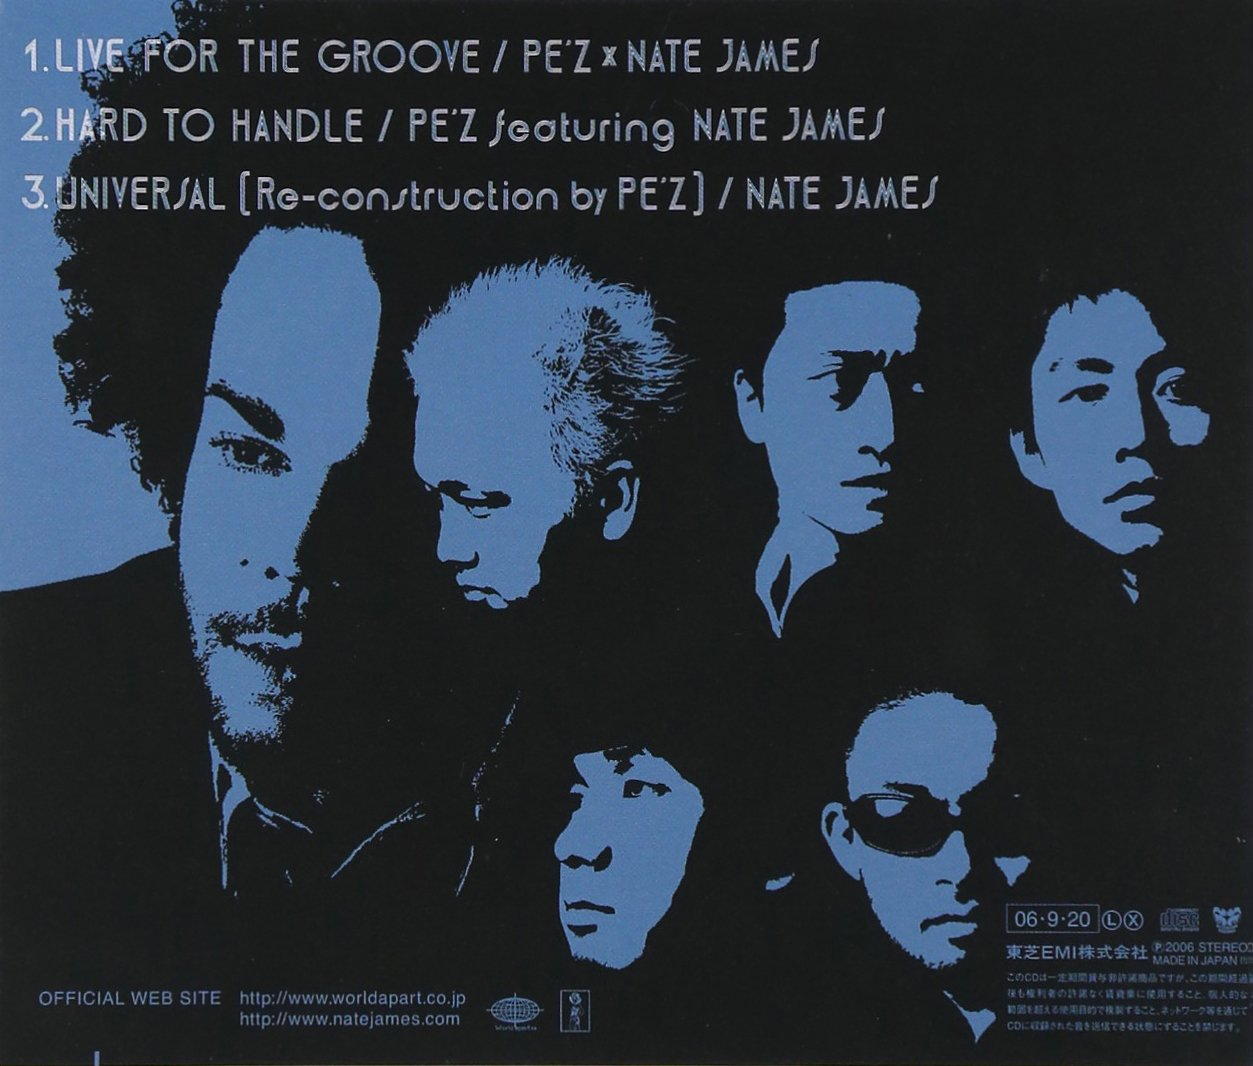 Live for the Groove by EMI Japan